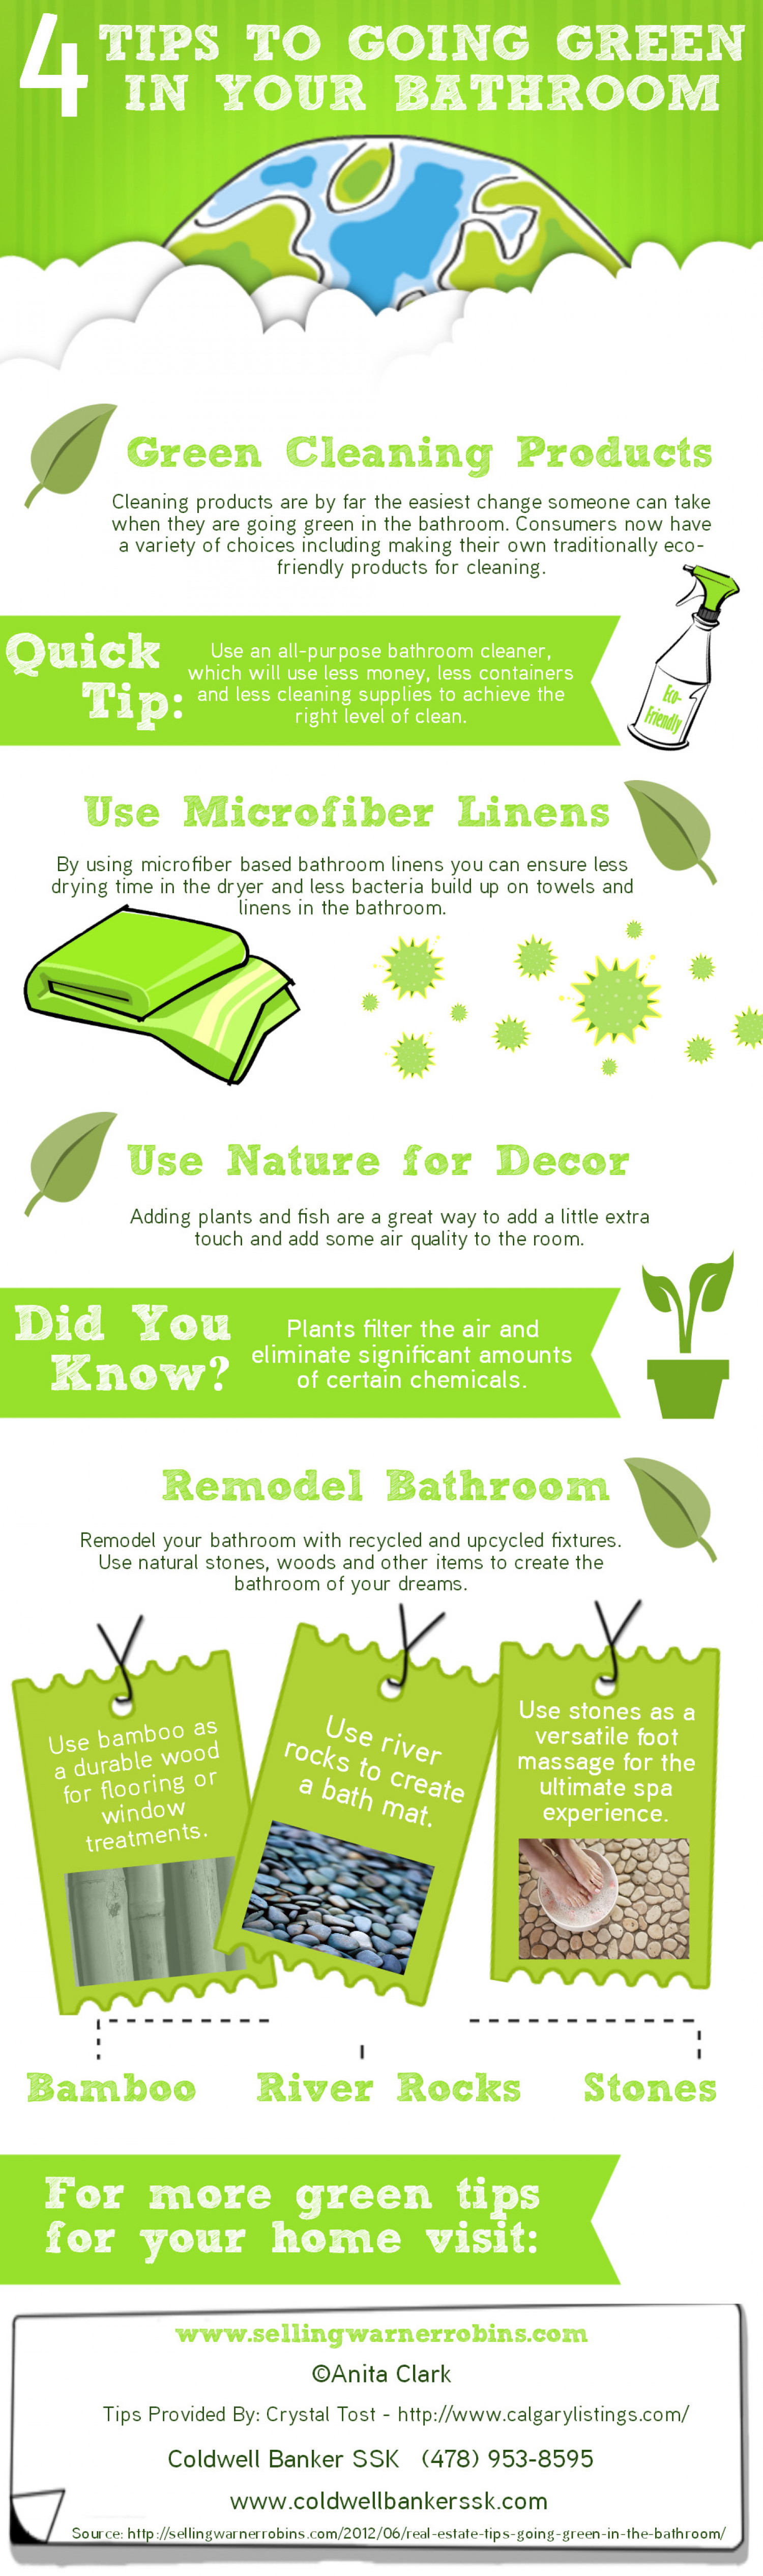 4 Tips to Going Green in Your Bathroom  Infographic